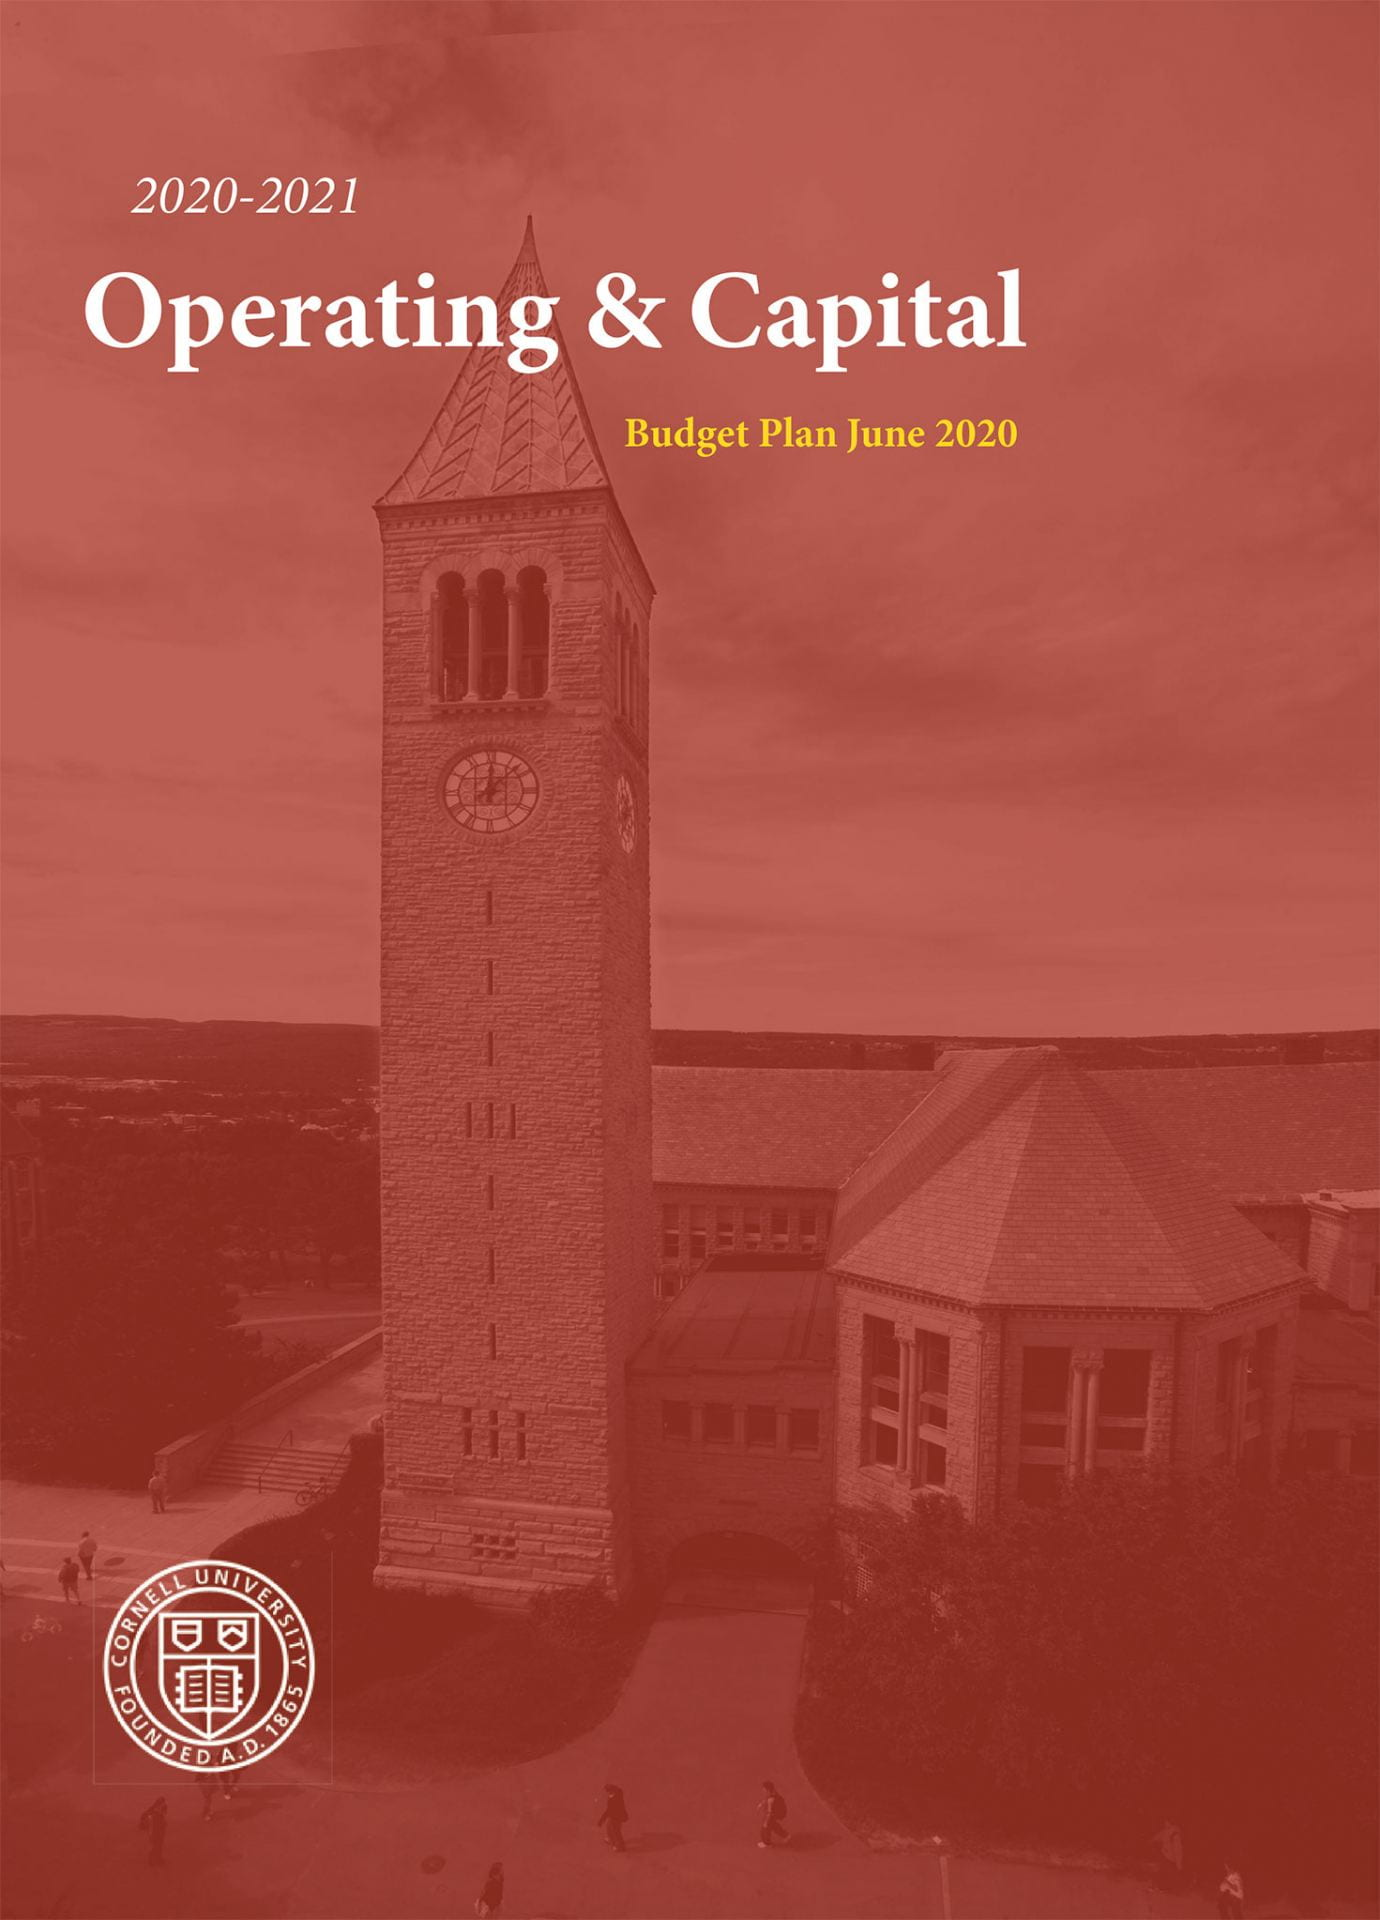 2020-2021 Operating And Capital Plan Cover